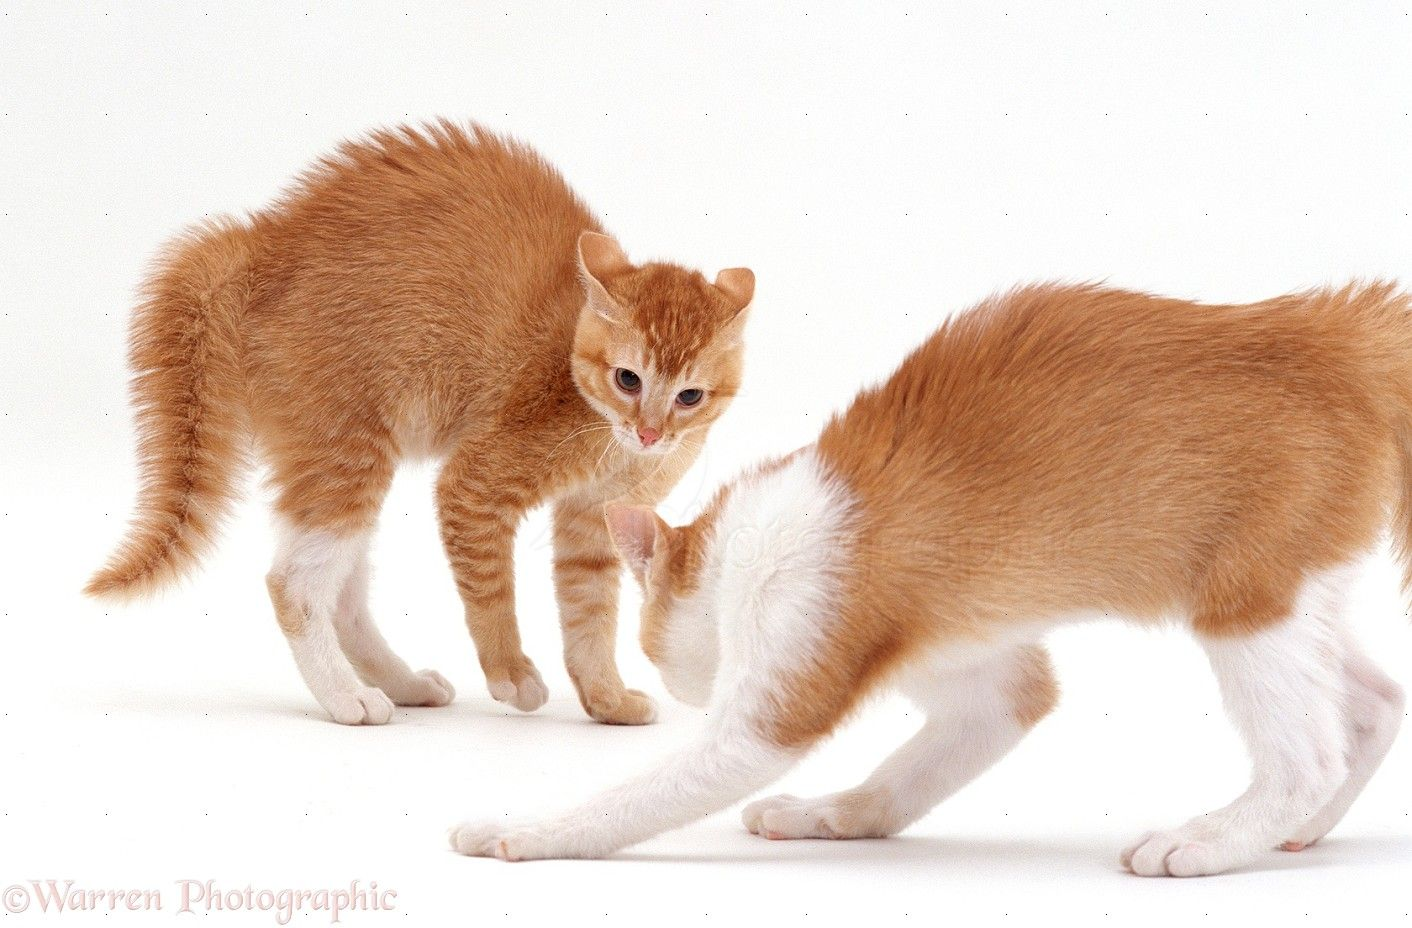 Kittens In Arched Back Play Fight Posture Photo Wp16681 Arched Kittens Play Playing Posture Fight Ginger Cat Cats Standing In 2020 Cat Reference Cat Pose Cat Stands